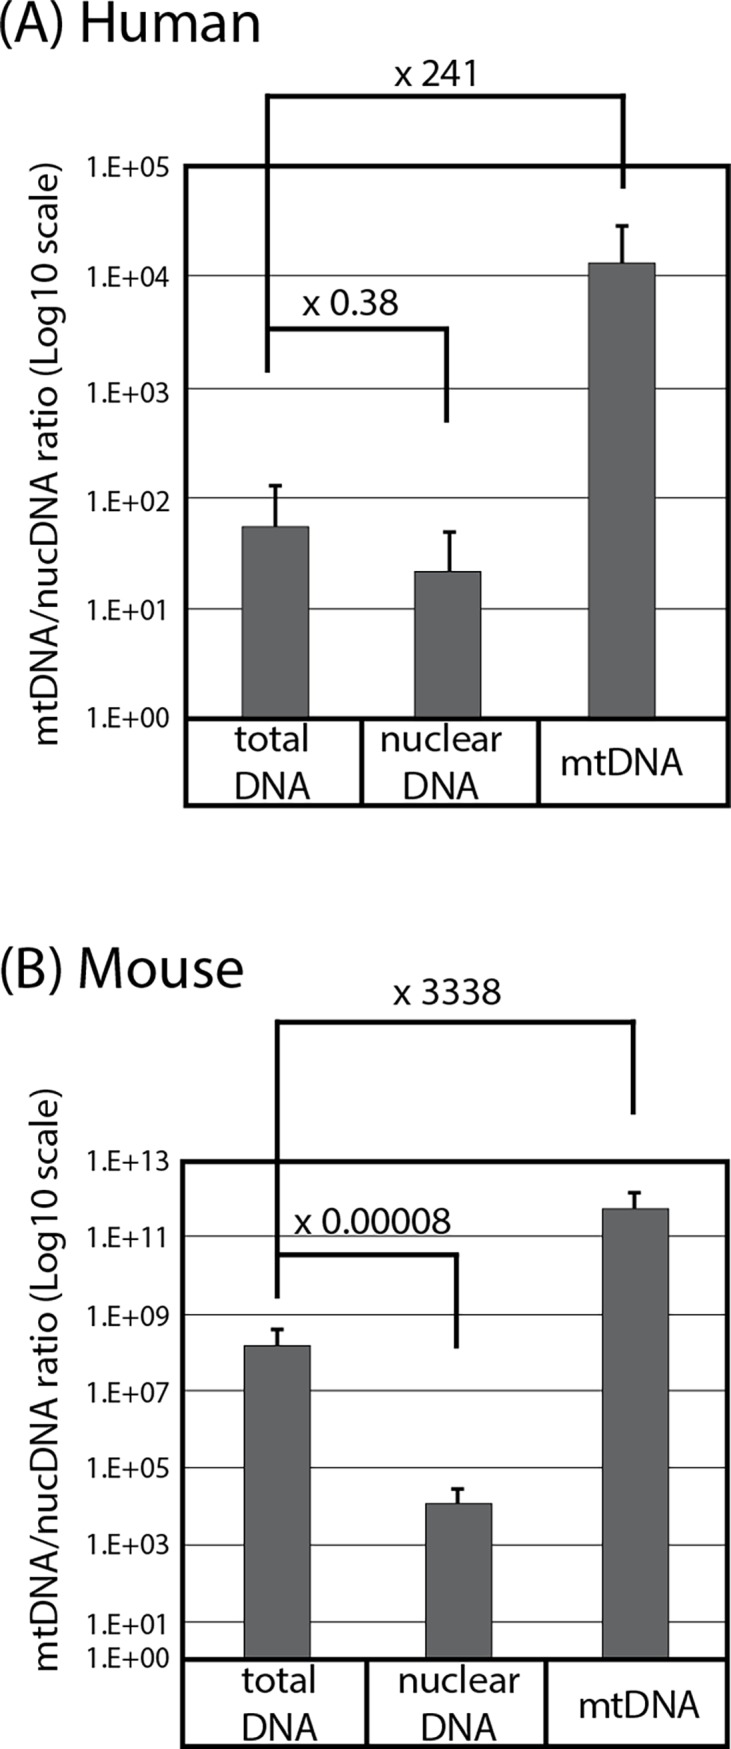 Enrichment of human and mouse mtDNA over nuclear DNA. Ratios of copy numbers of human (A) or mouse (B) mtDNA and nuclear DNA were determined by qPCR of mtDNA and nuclear DNA marker genes (Mean±SD, triplicated assays). Numbers show fold enrichment compared to total DNA.